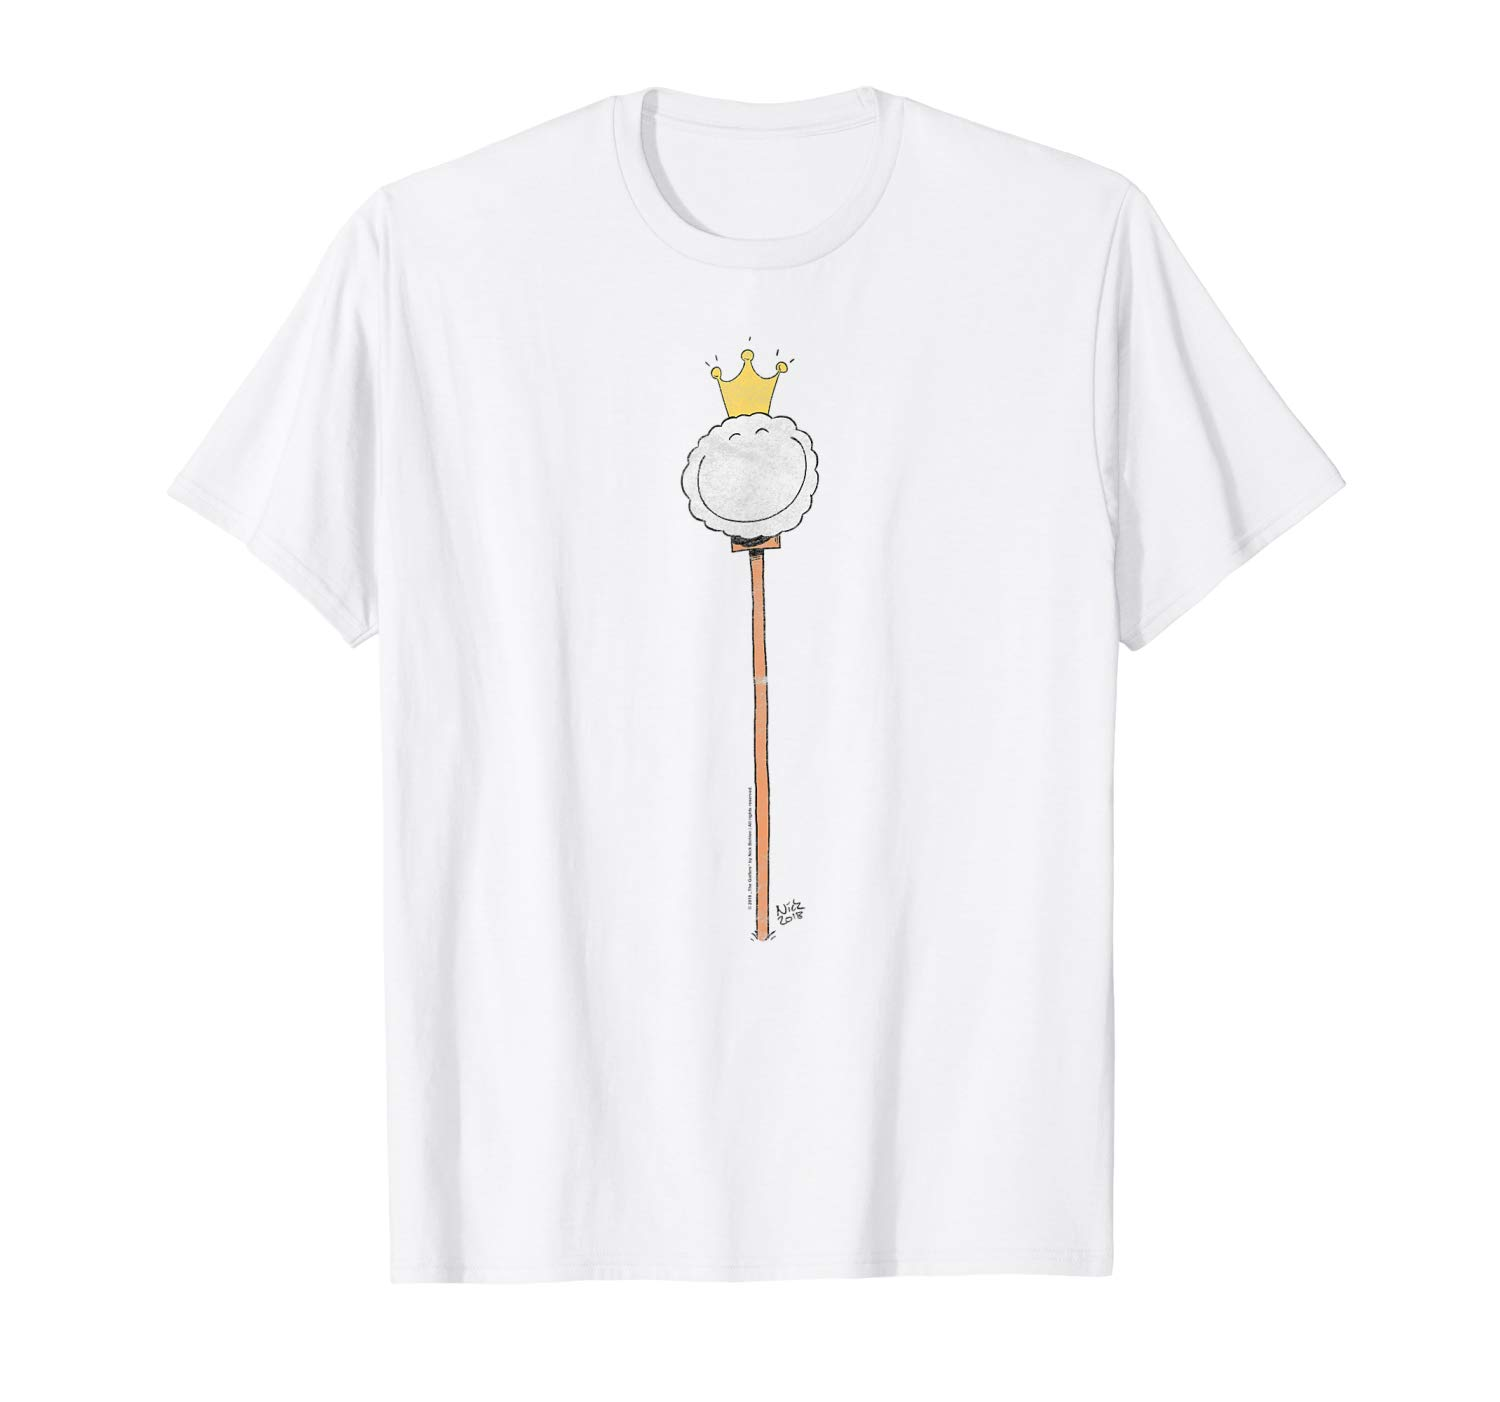 T-Shirt: I feel like a King Lustiges Golfball Golf Shirt Design T-Shirt